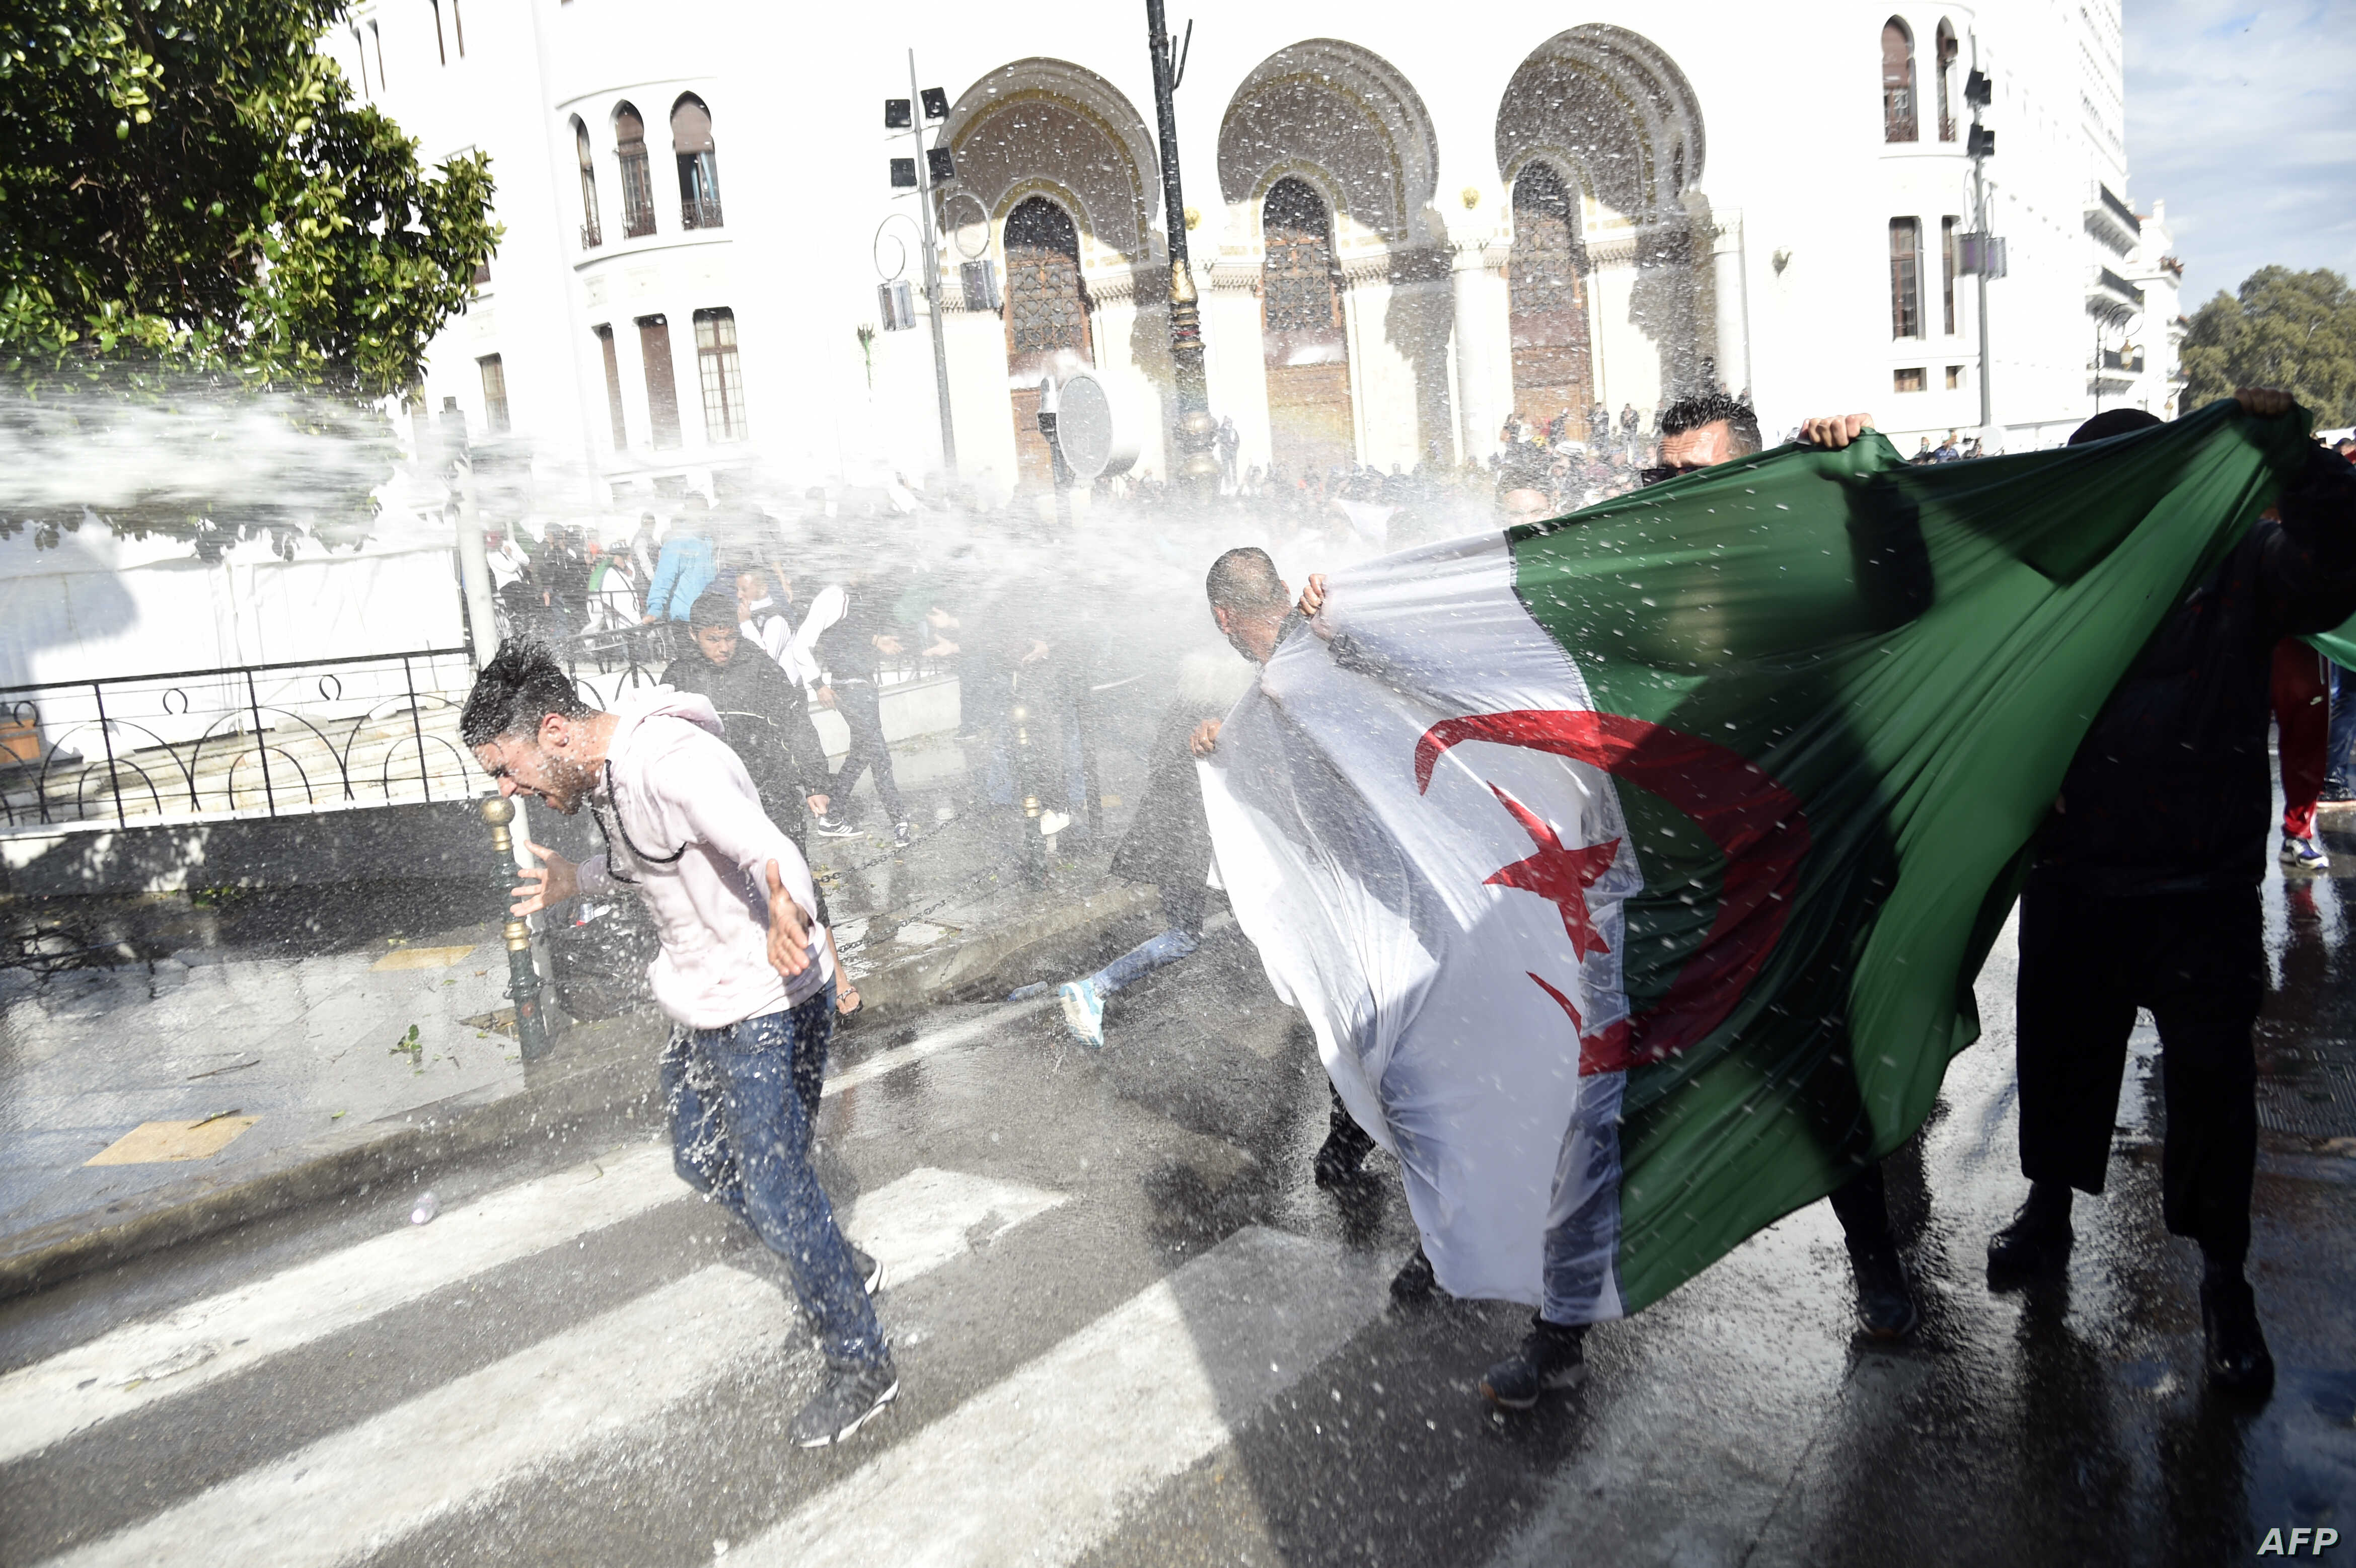 Algerian riot police spray anti-government protesters with water during a demonstration in the capital Algiers, April 9, 2019